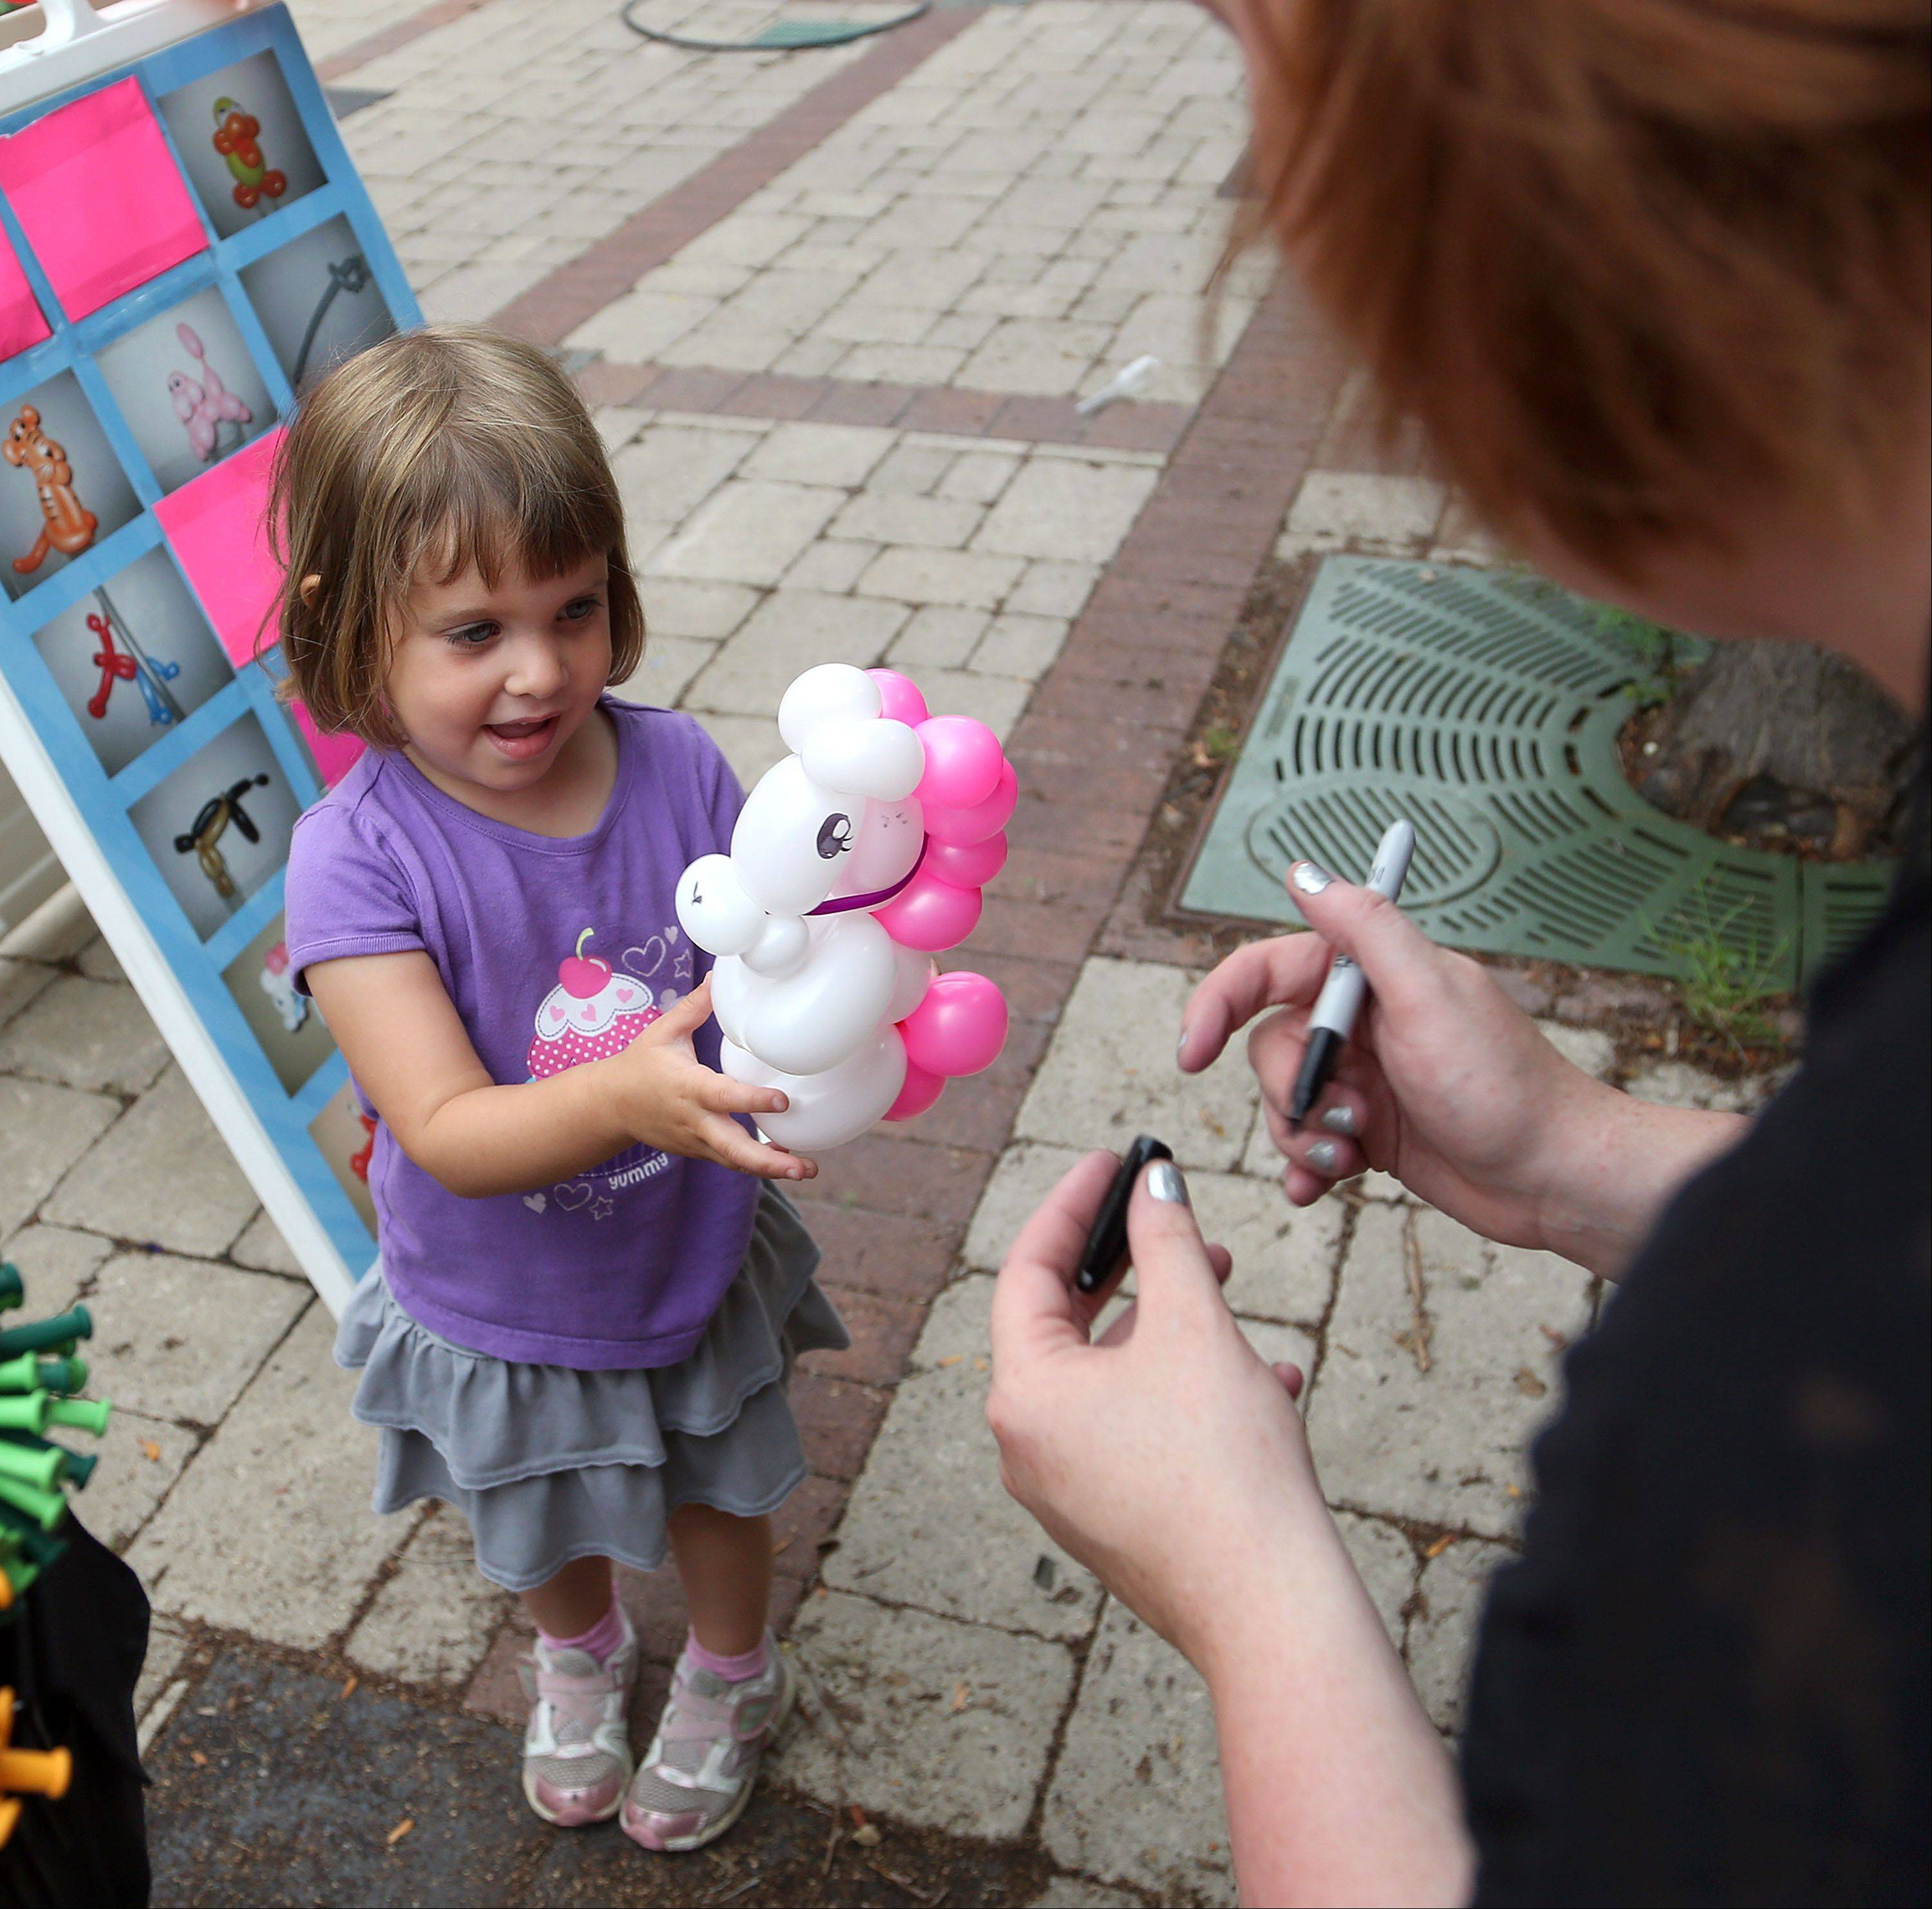 Lauren Miller, 3, of Grayslake, gets a balloon animal made by Amber Burkey, of Winthrop Harbor, as Grayslake held it�s weekly farmers market.